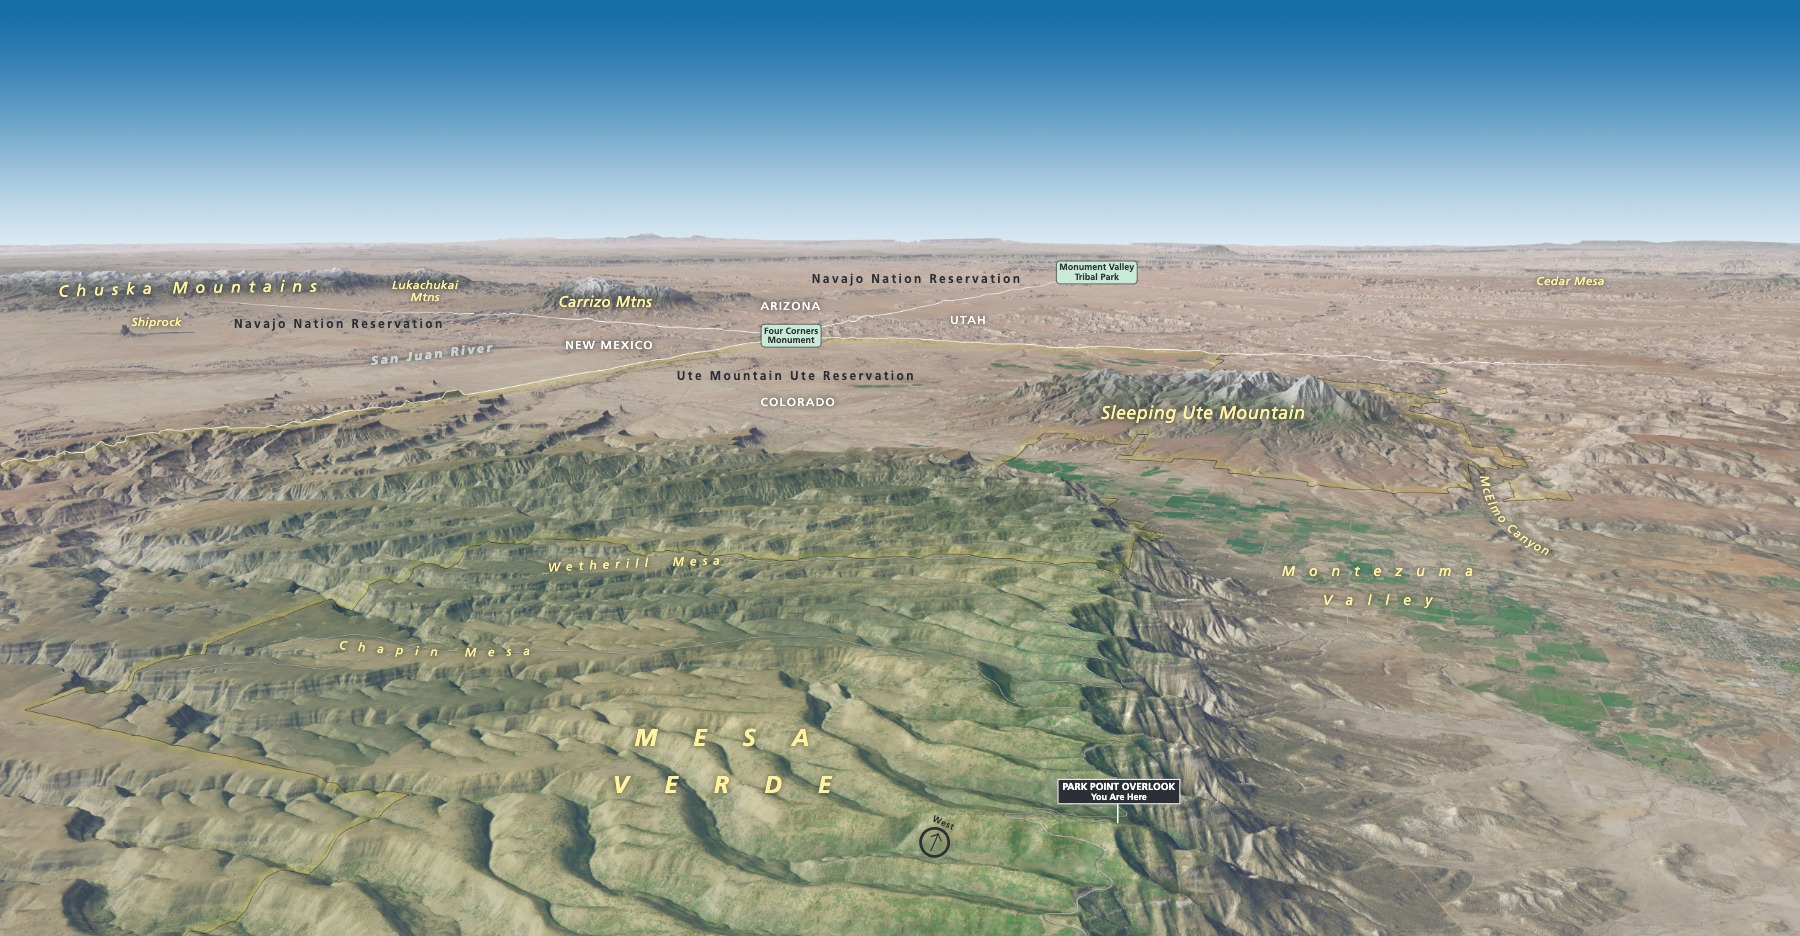 3D Panorama Map - West View - From park wayside exhibit